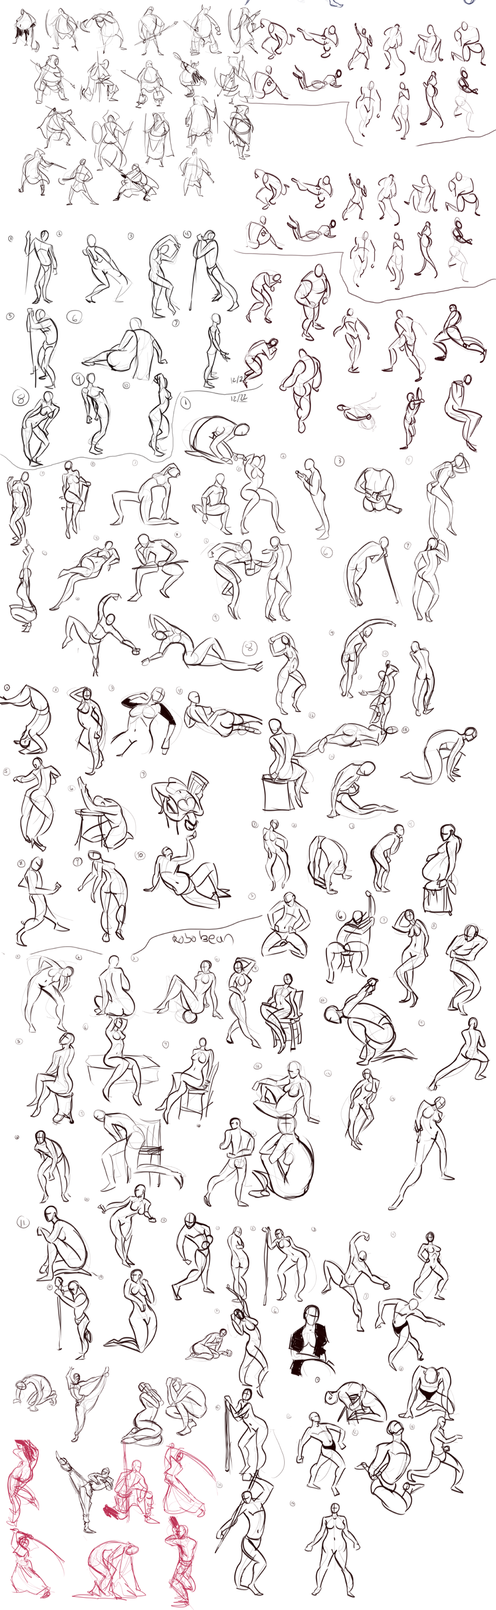 Gesture Sketchdump 2 by Ric-M